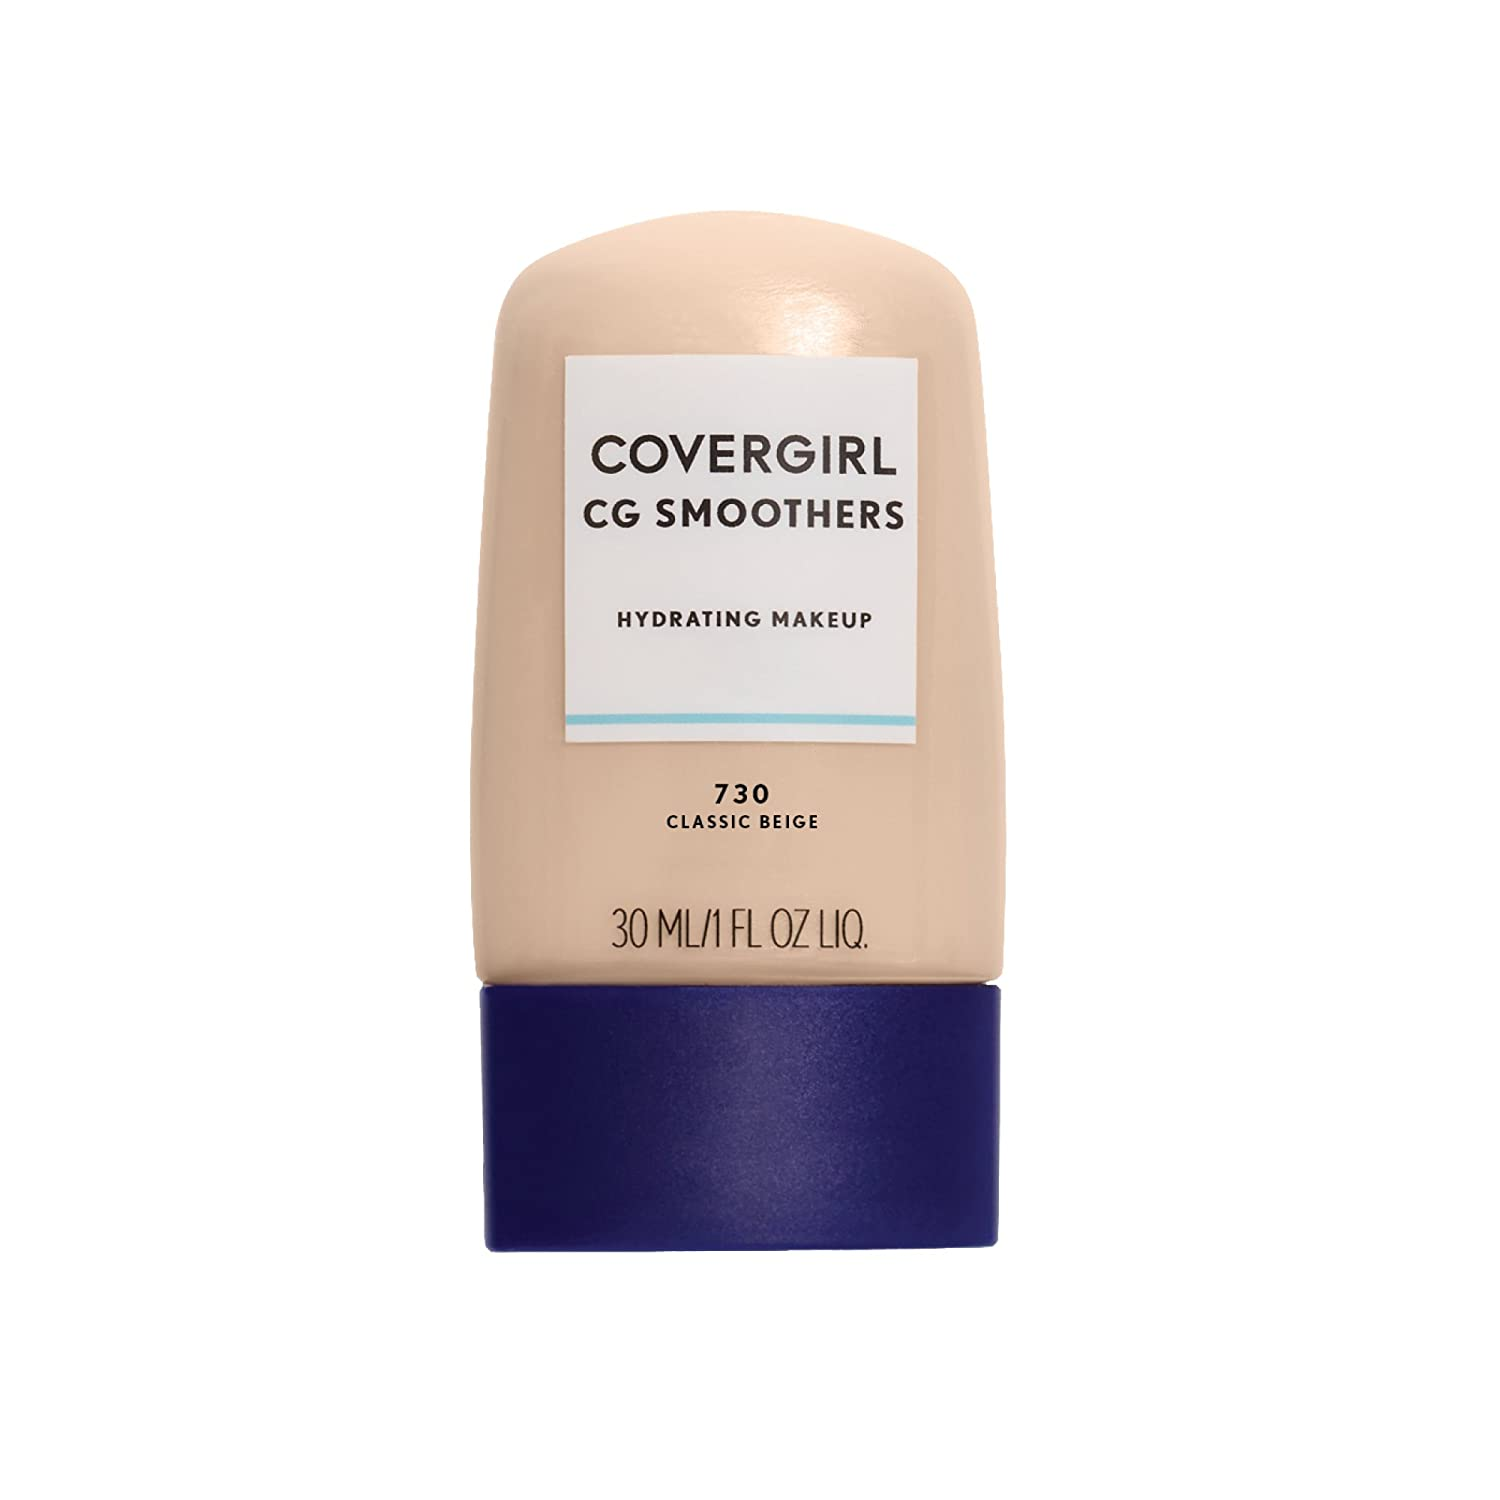 COVERGIRL Smoothers Hydrating Makeup Classic Beige, 1 oz (packaging may vary)